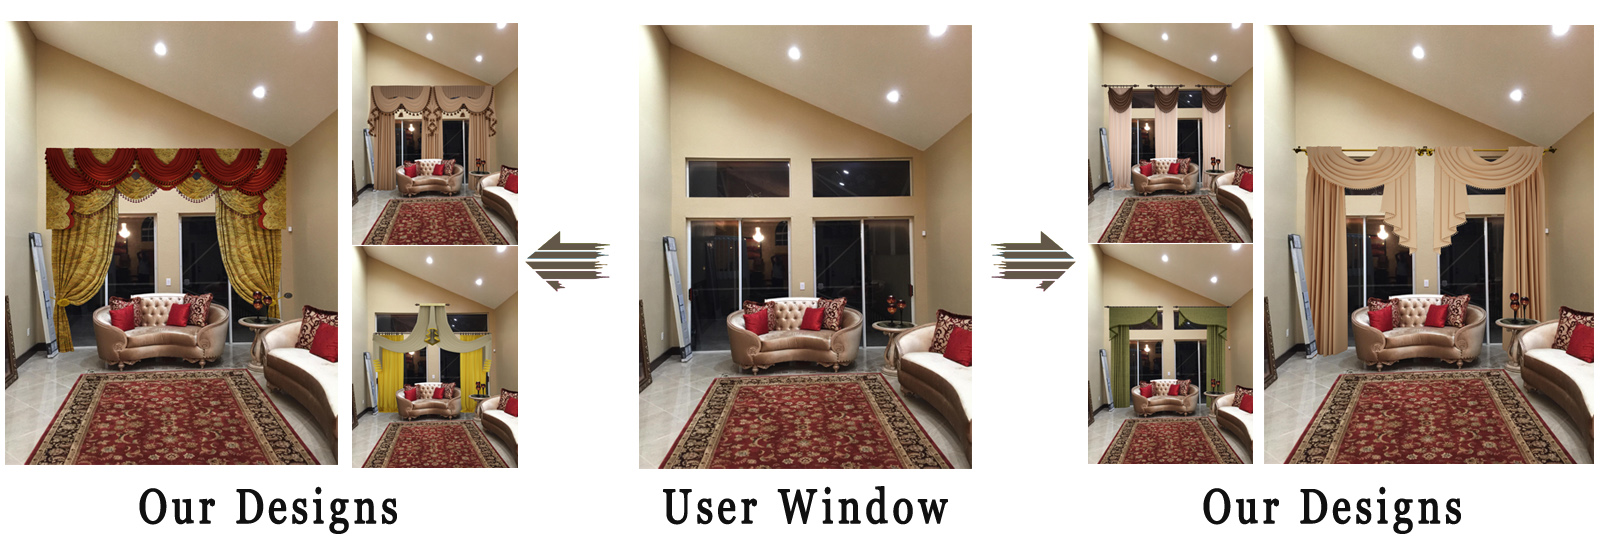 Use Any Fabric And We Will Send All Fabrics Samples To You Do Unlimited Designs Onto Your Window Pictures Until Are Fully Satisfied For Free